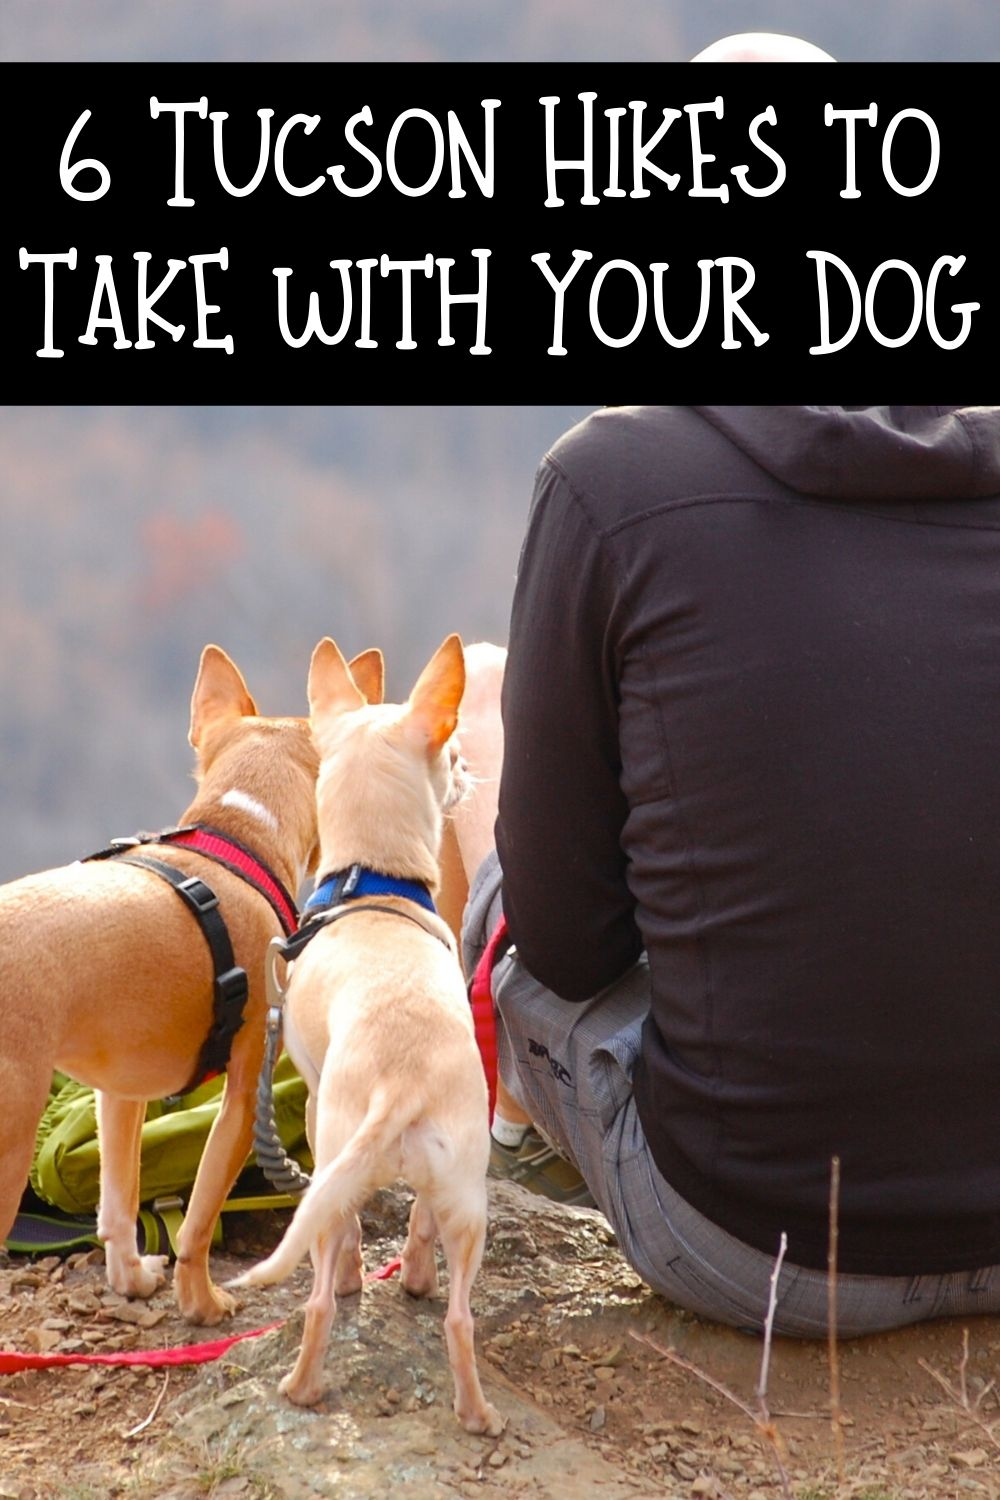 Looking for some dog friendly Tucson hikes? We've got you covered. Here are some excellent choices for your pet friendly Tucson hikes. These 6 hikes in Tucson that you can enjoy with your dog will help you get active and enjoy the many benefits of Tucson living!